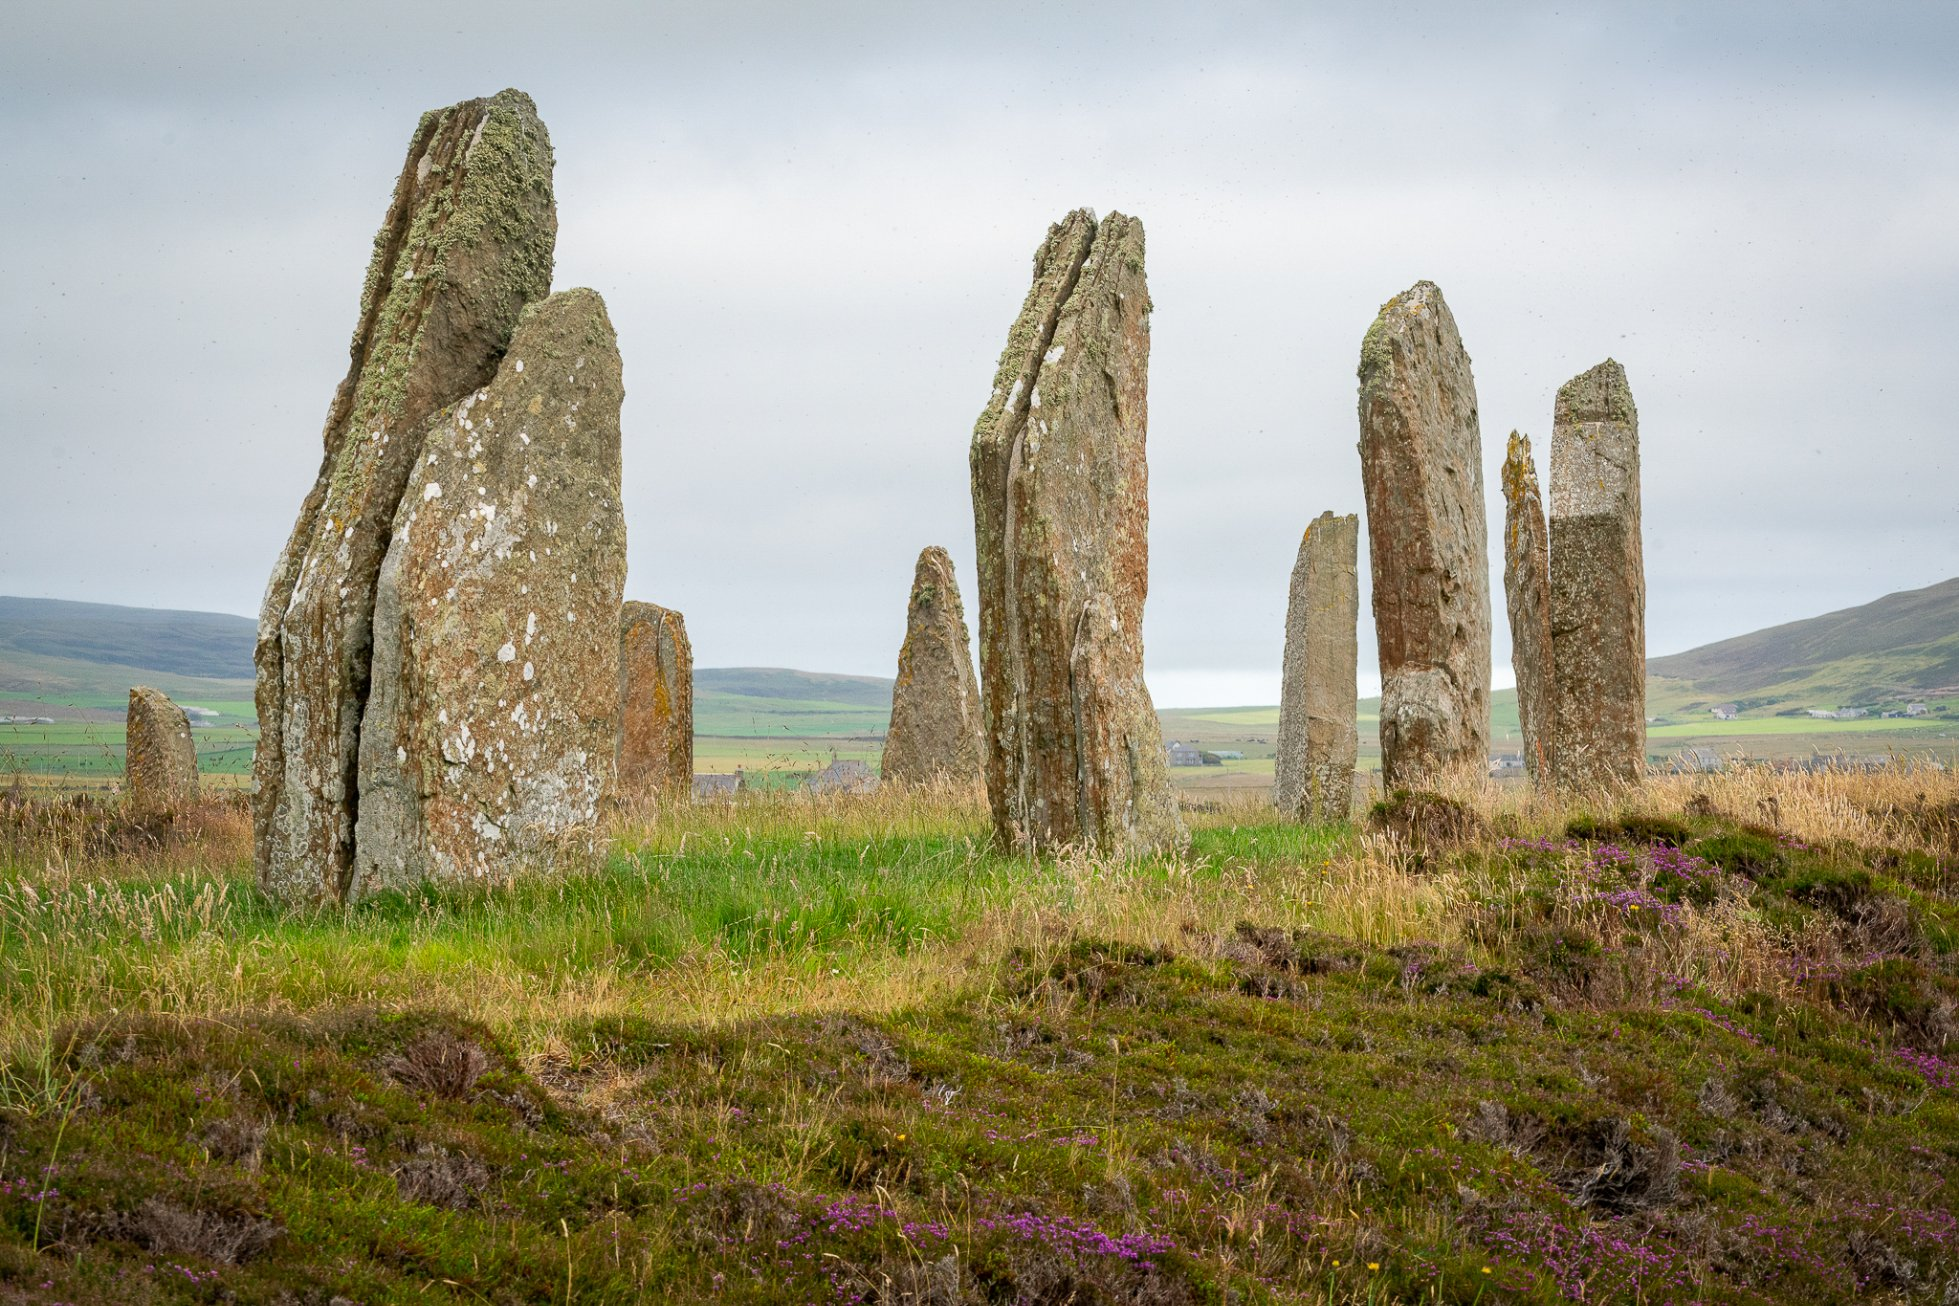 The Ring of Brodgar, Orkney - image by Martin Lever